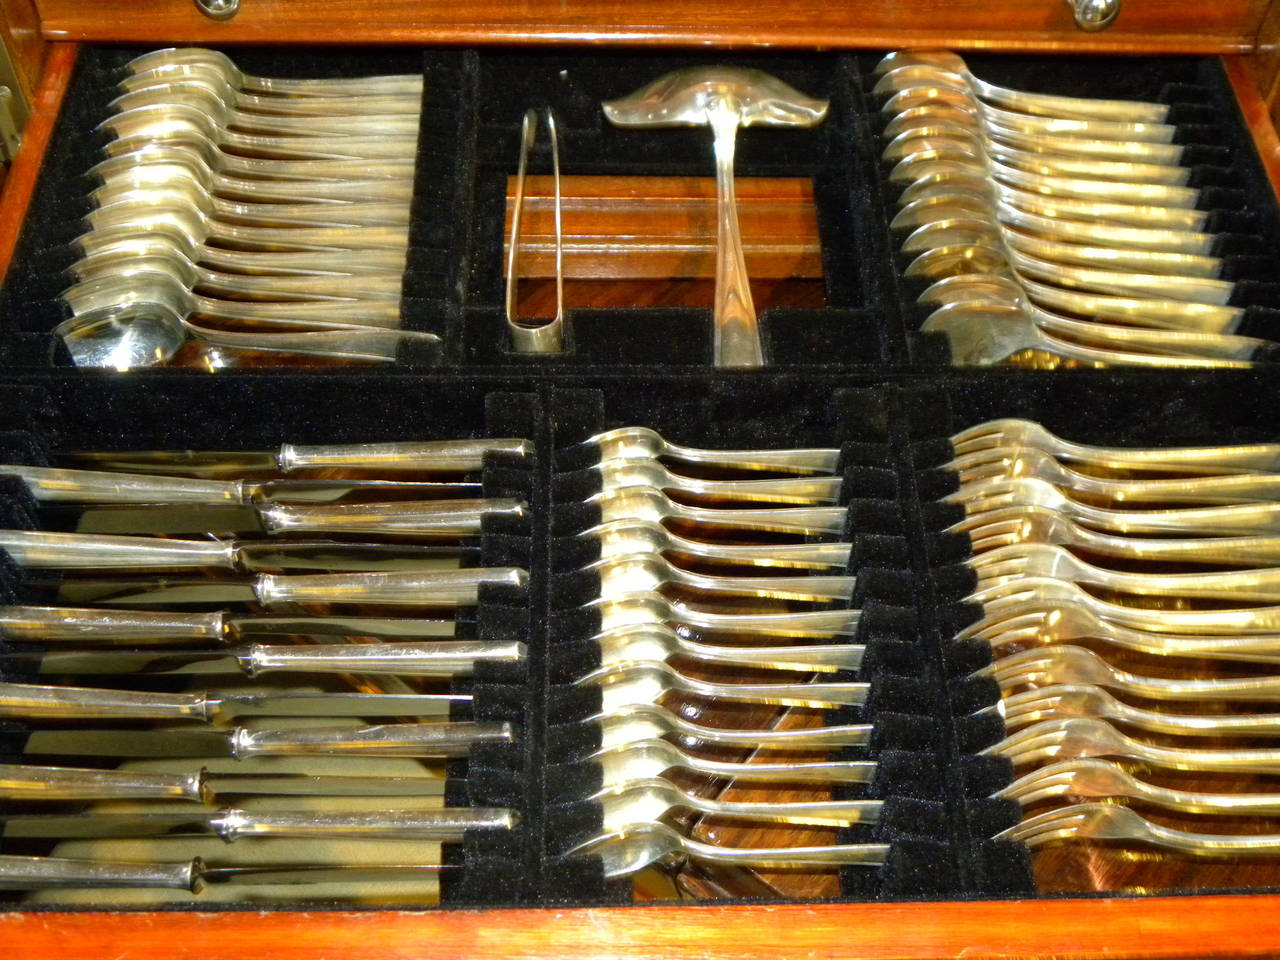 Classic Art Deco Complete Set of Silverware Cutlery in Fitted Box For Sale 1